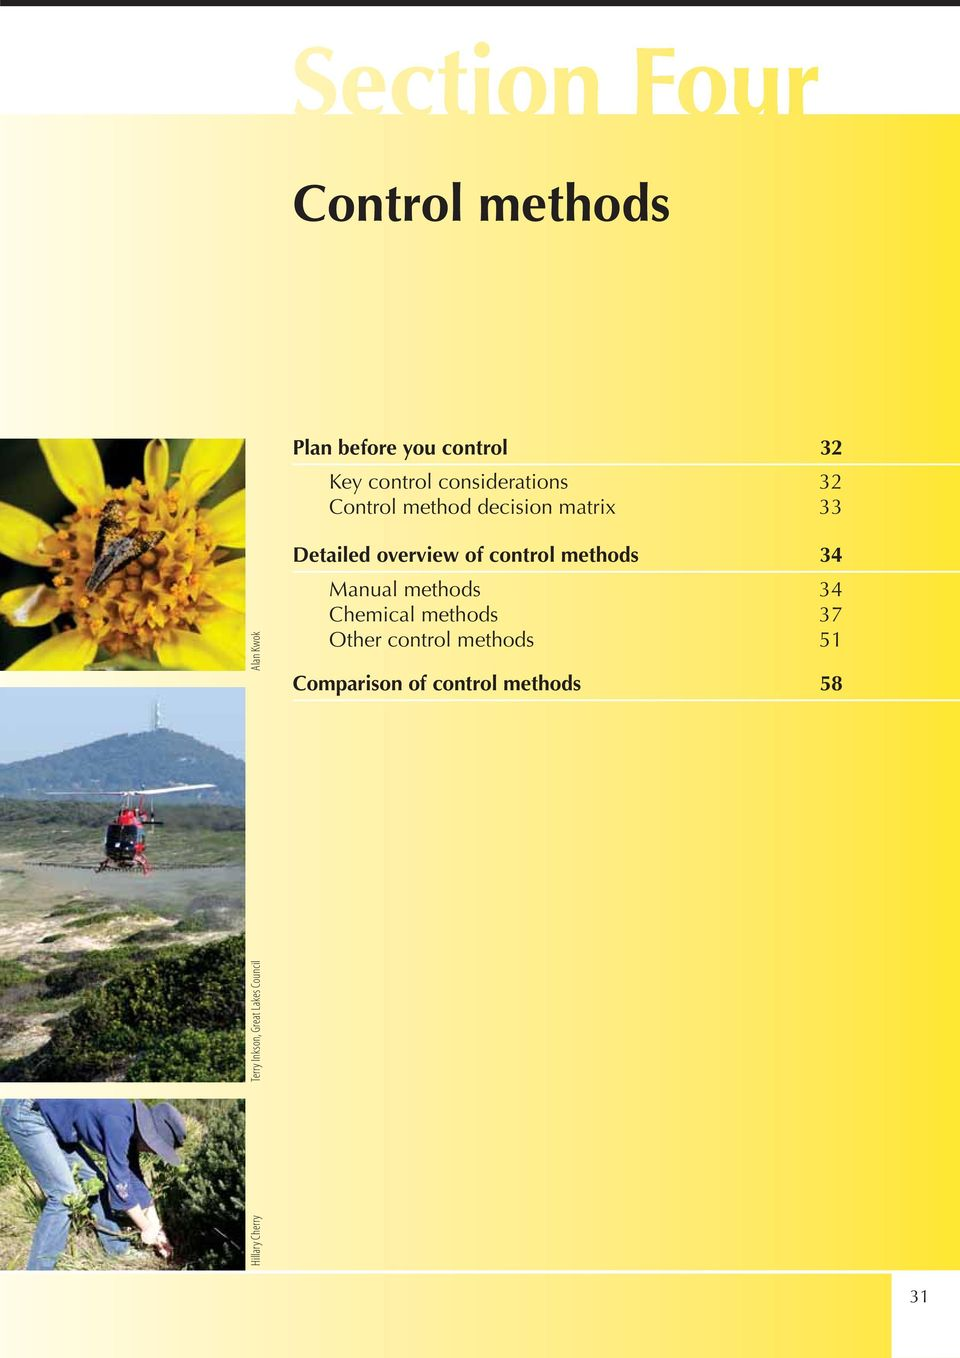 Council Alan Kwok Detailed overview of control methods 34 Manual methods 34